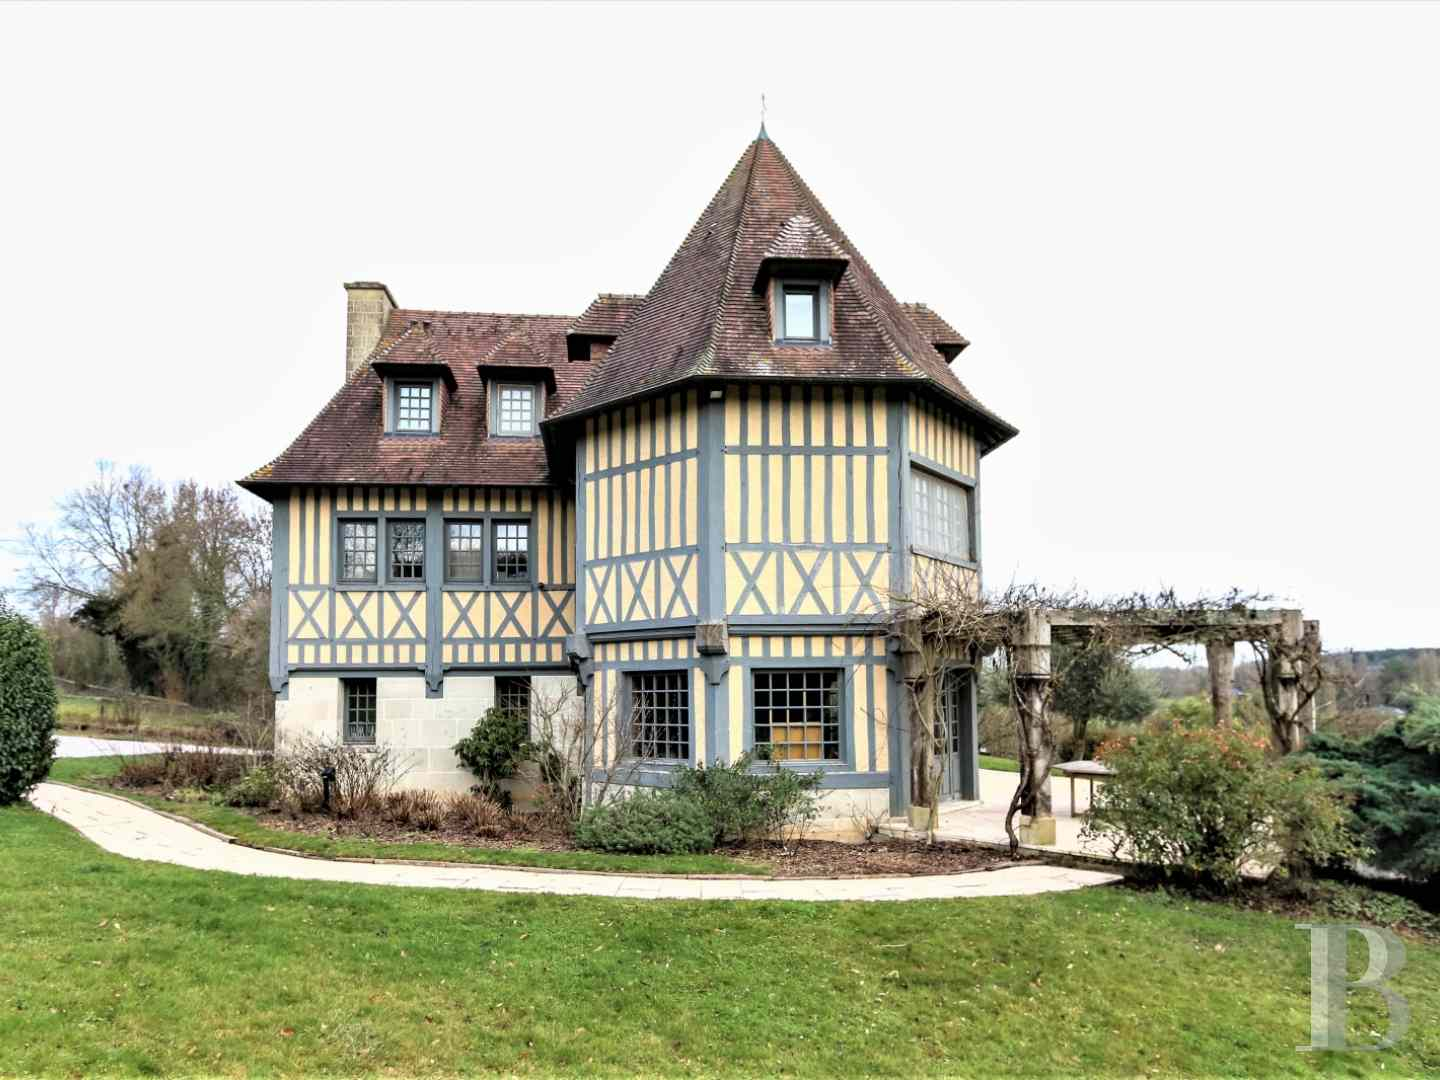 France mansions for sale lower normandy manors equestrian - 4 zoom